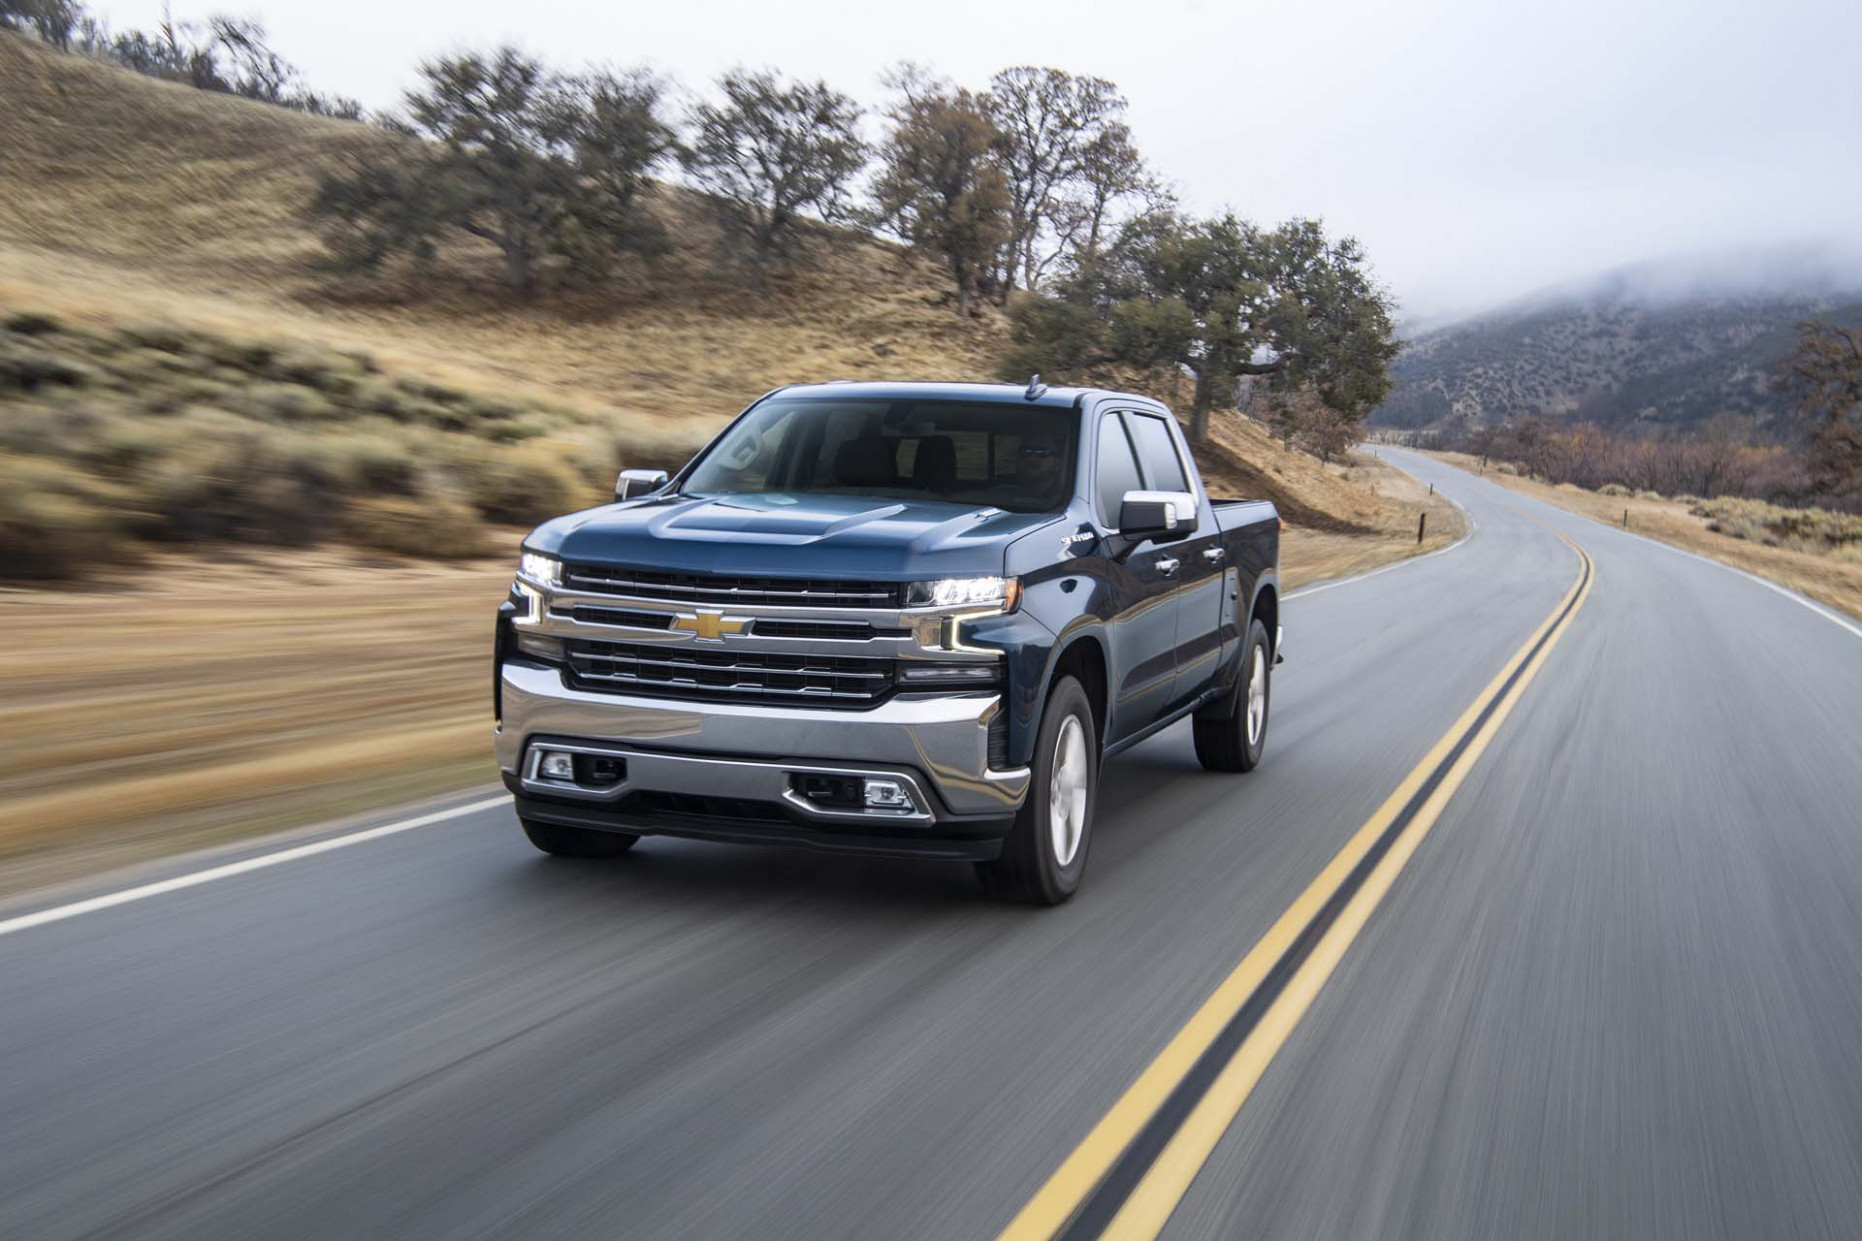 12 Chevrolet Silverado vs. 12 GMC Sierra 12: Compare Trucks